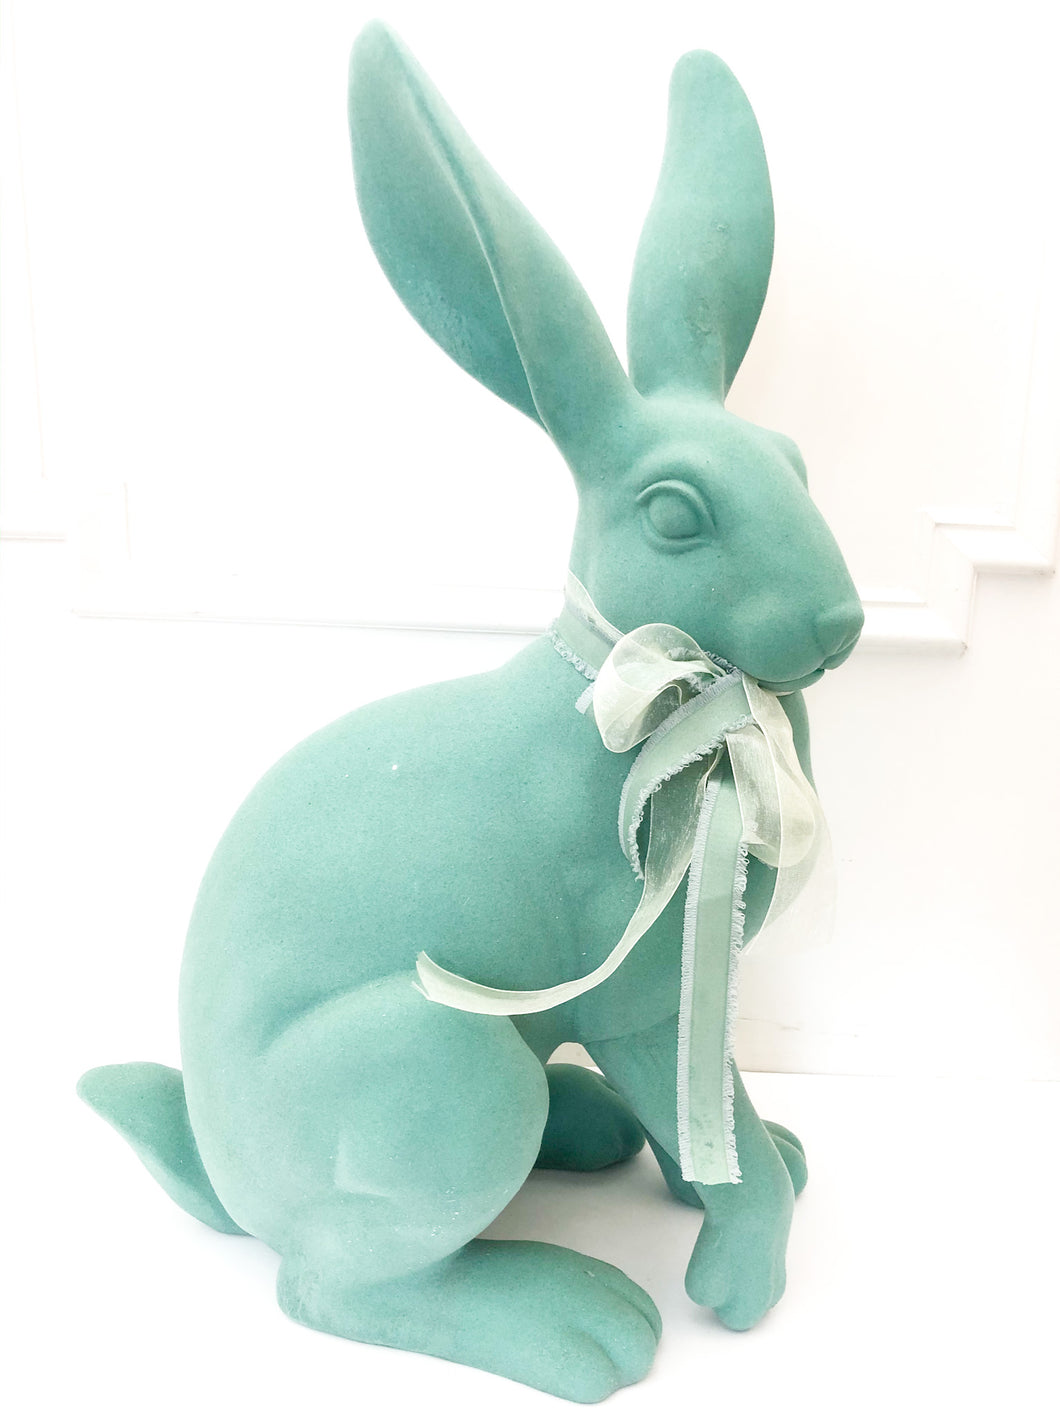 Flocked Resin Rabbit 25